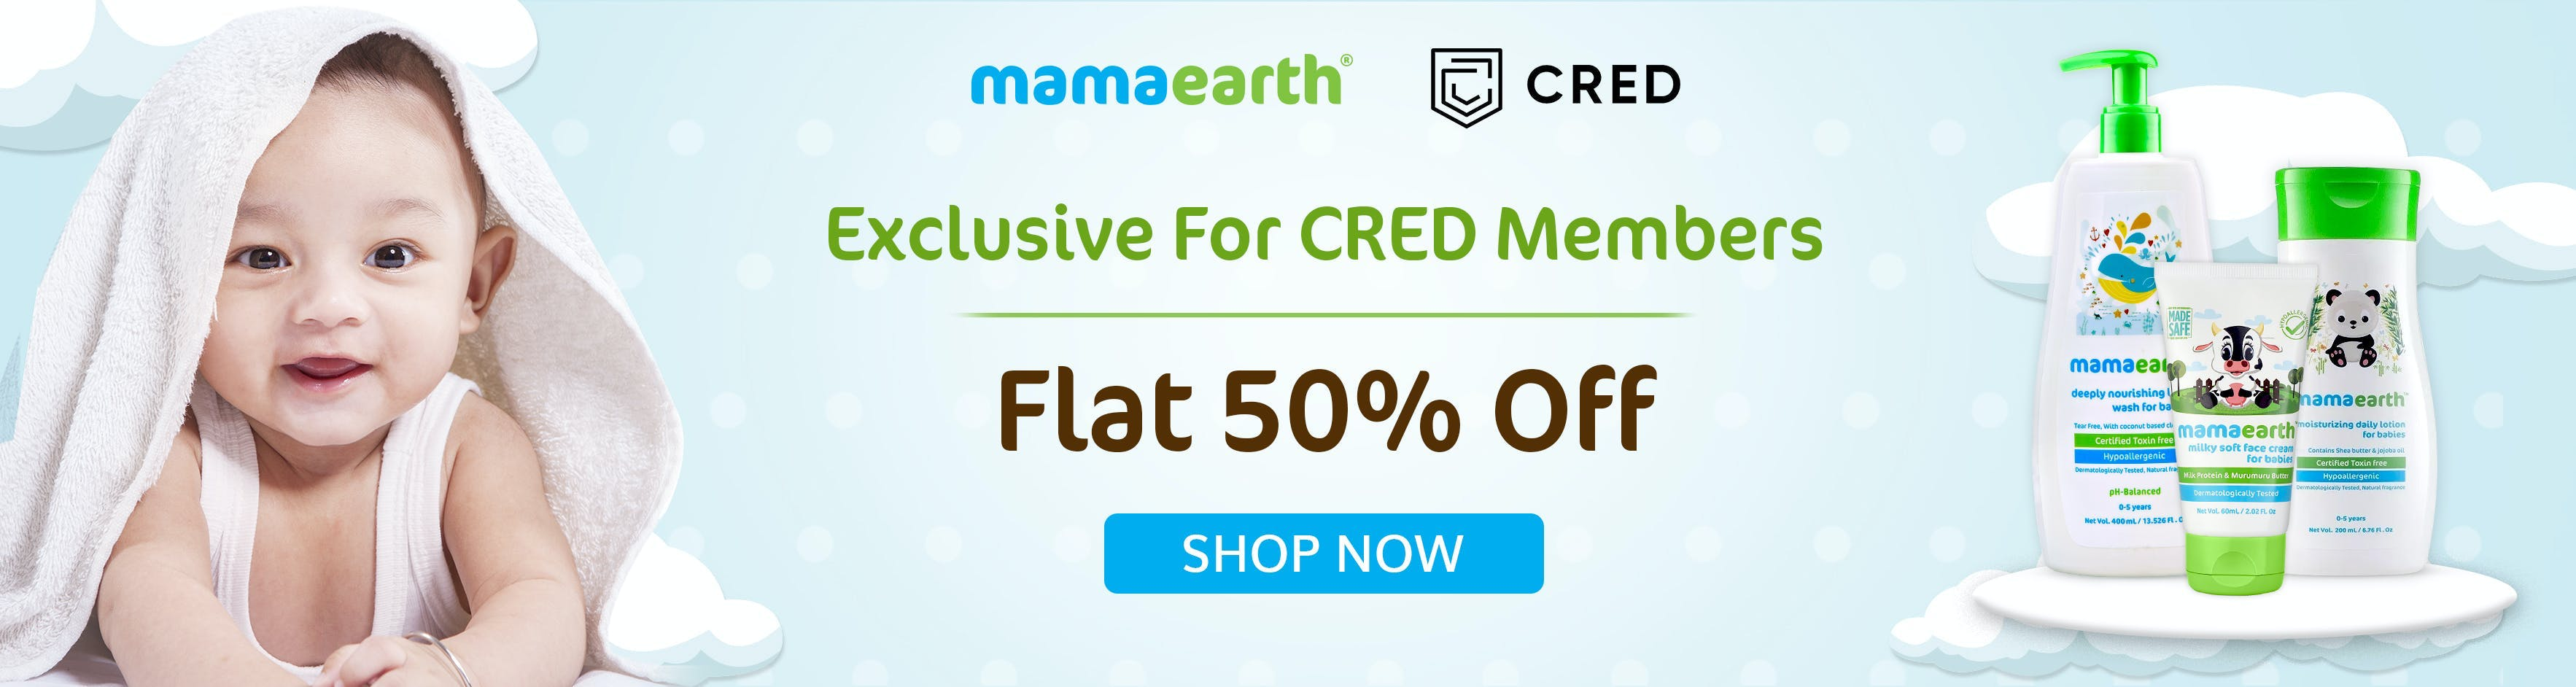 mamaearth.in - Avail Flat 50% OFF on Baby Care